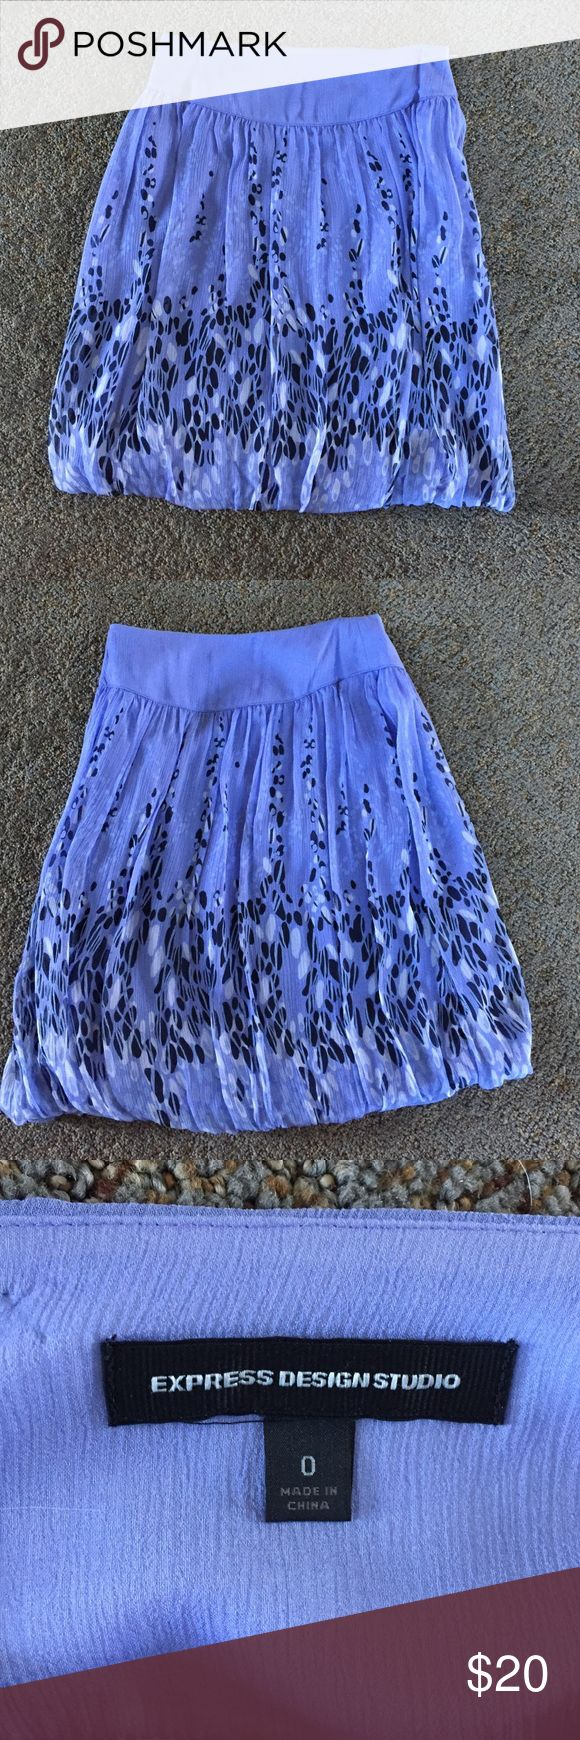 Purple bubble skirt Bubble hemline white and black pattern. Express Skirts Mini